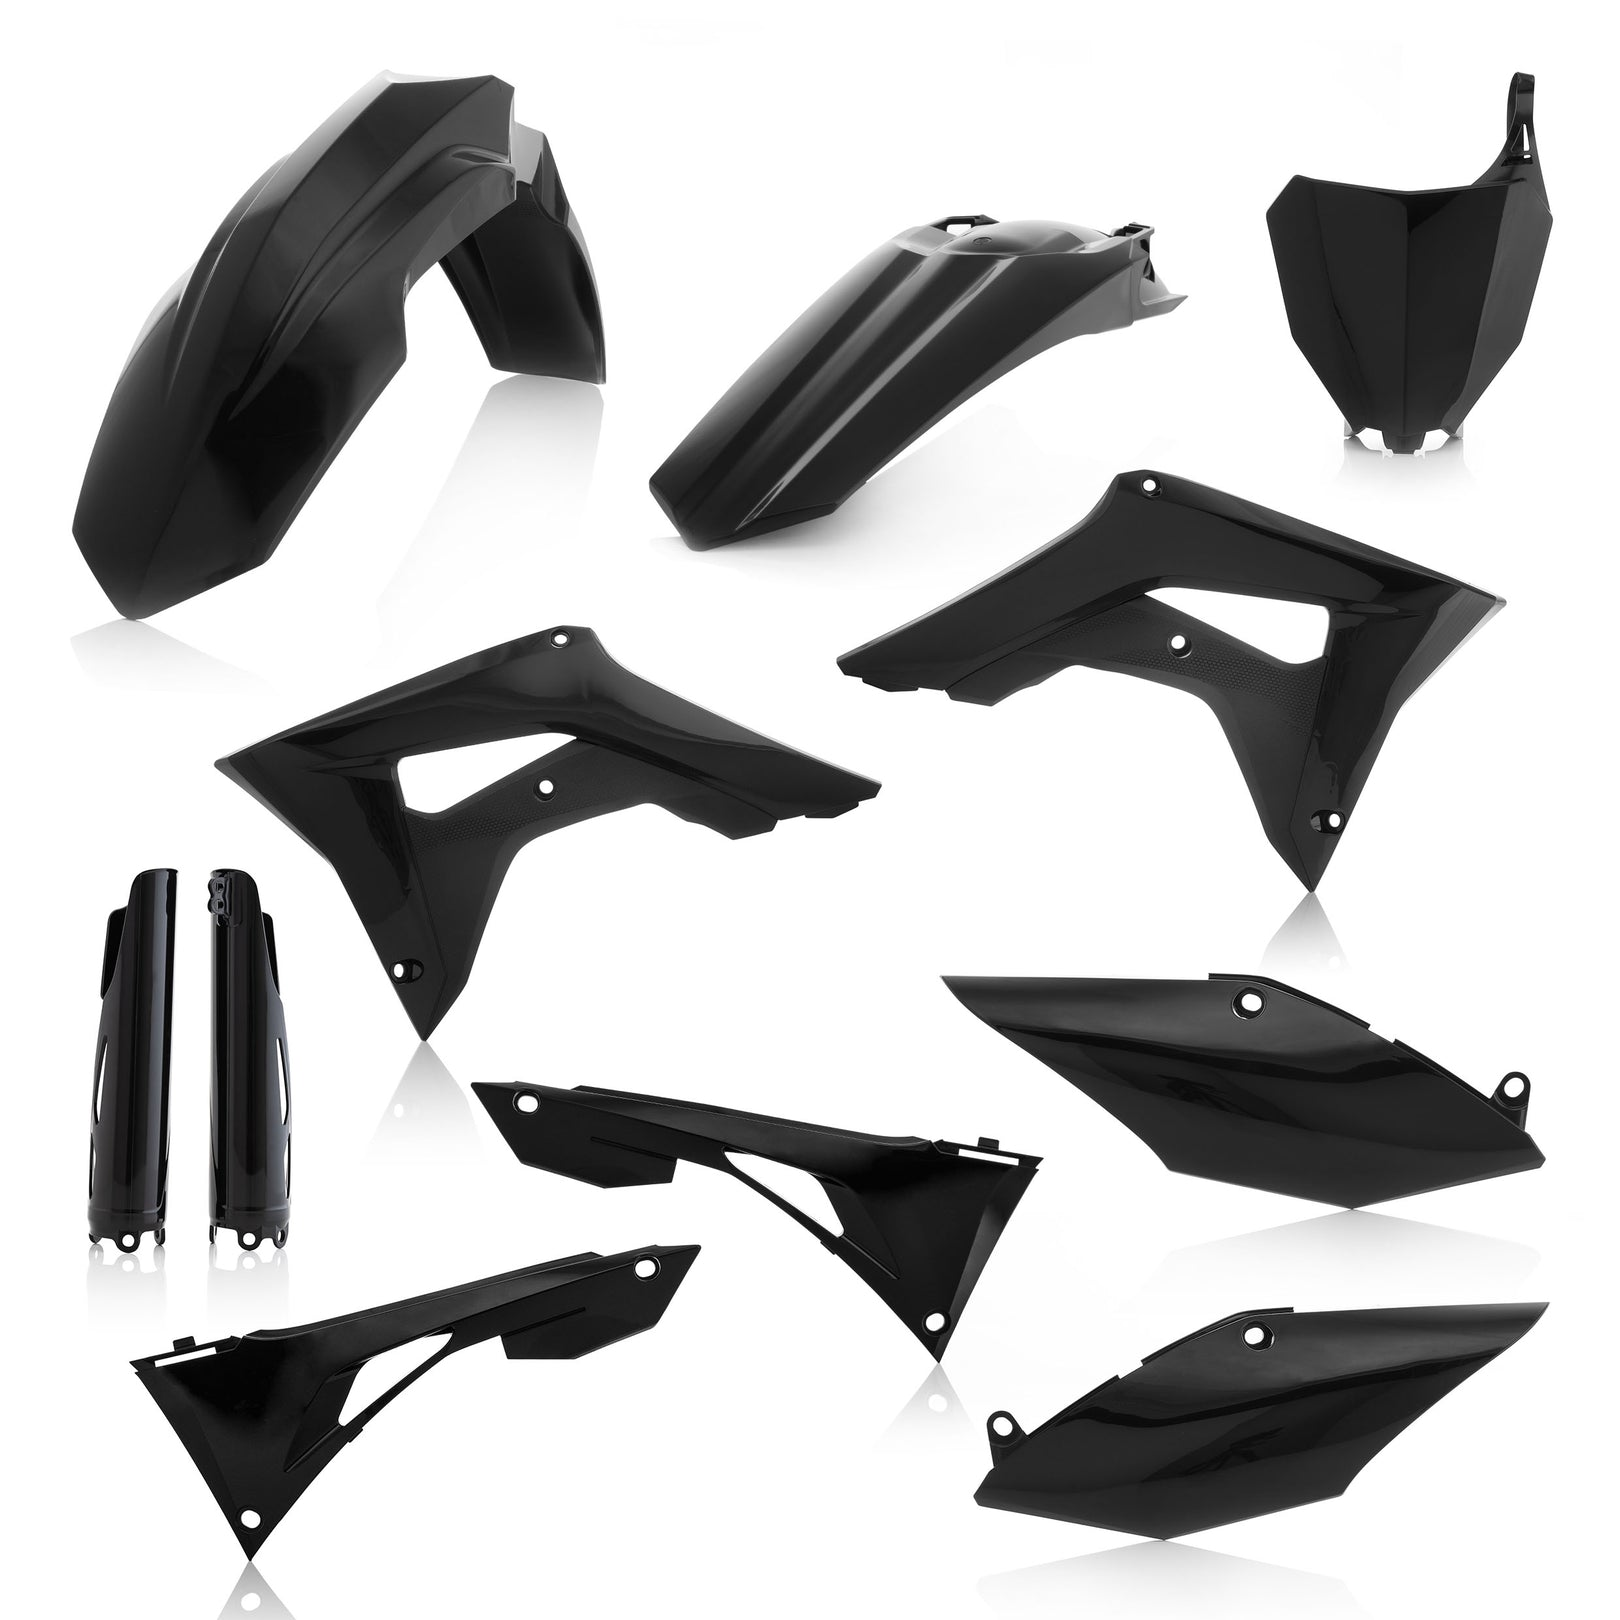 HONDA FULL PLASTIC KIT - BLACK - CRF250R/450R: 19-20 - Acerbis (includes airbox cover, does not include the tank cover)